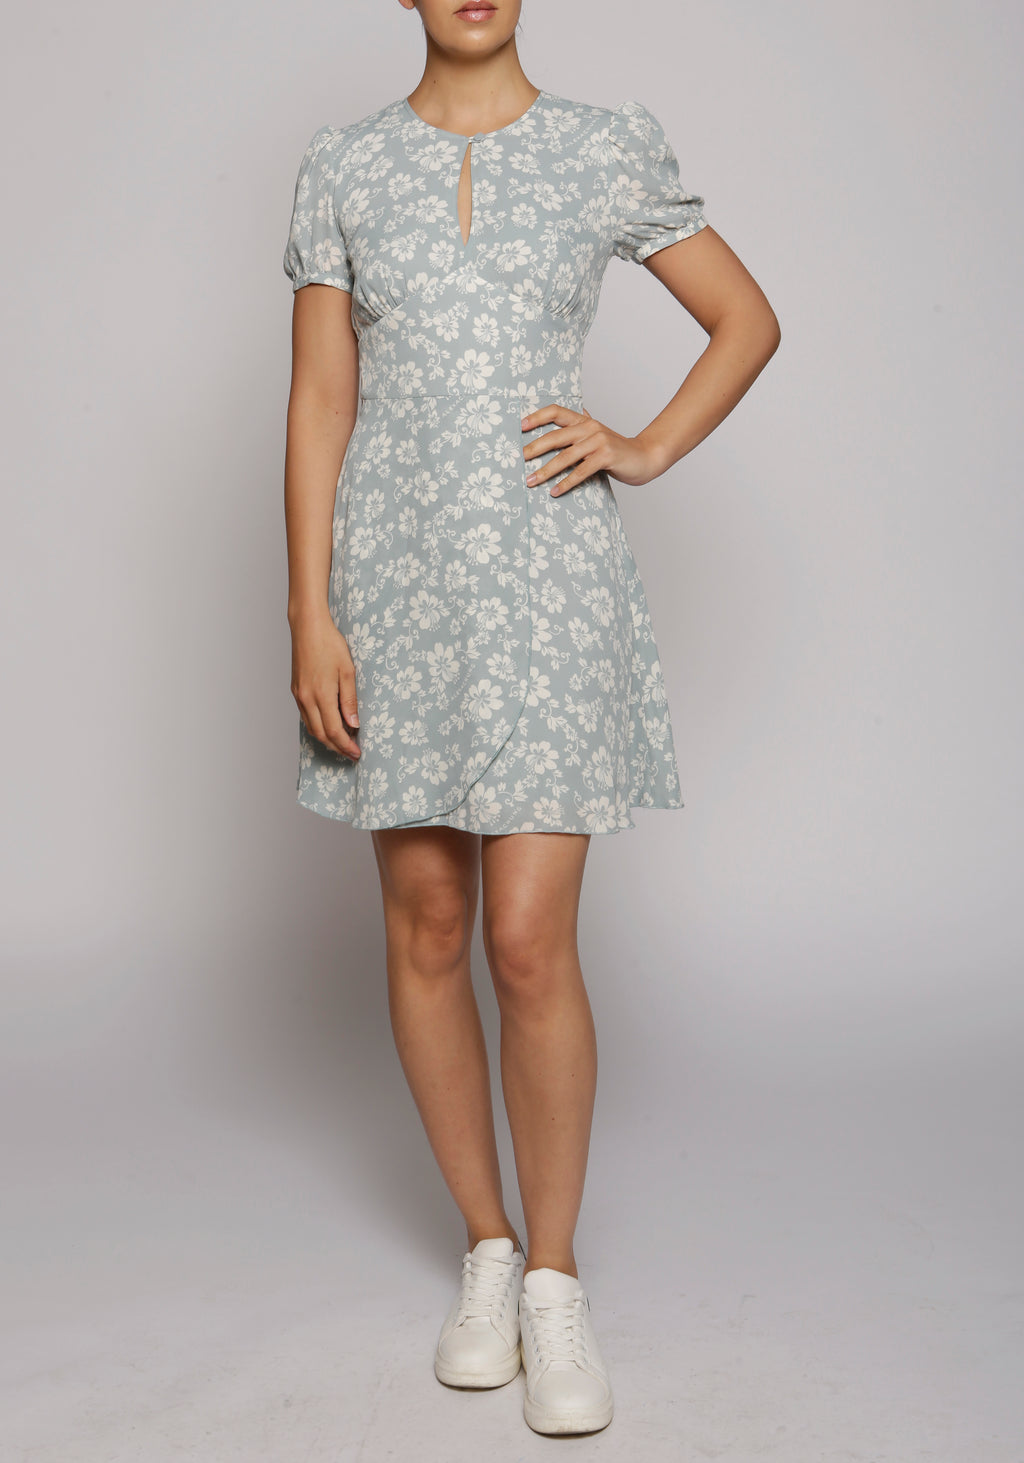 Alexa Chung Hibiscus Tea Dress - RRP £295